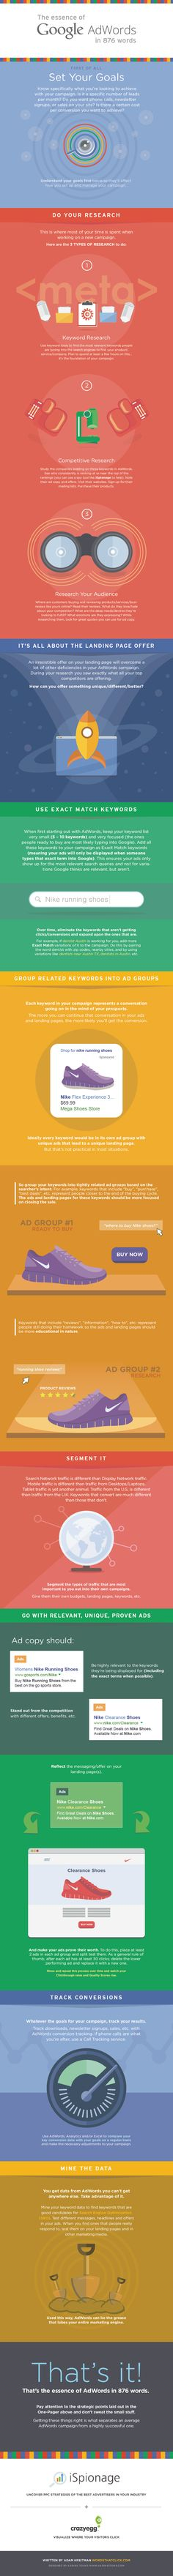 Infografica su Google Adwords...una sorta di checklist molto interessante - Google Adwords.. checklist